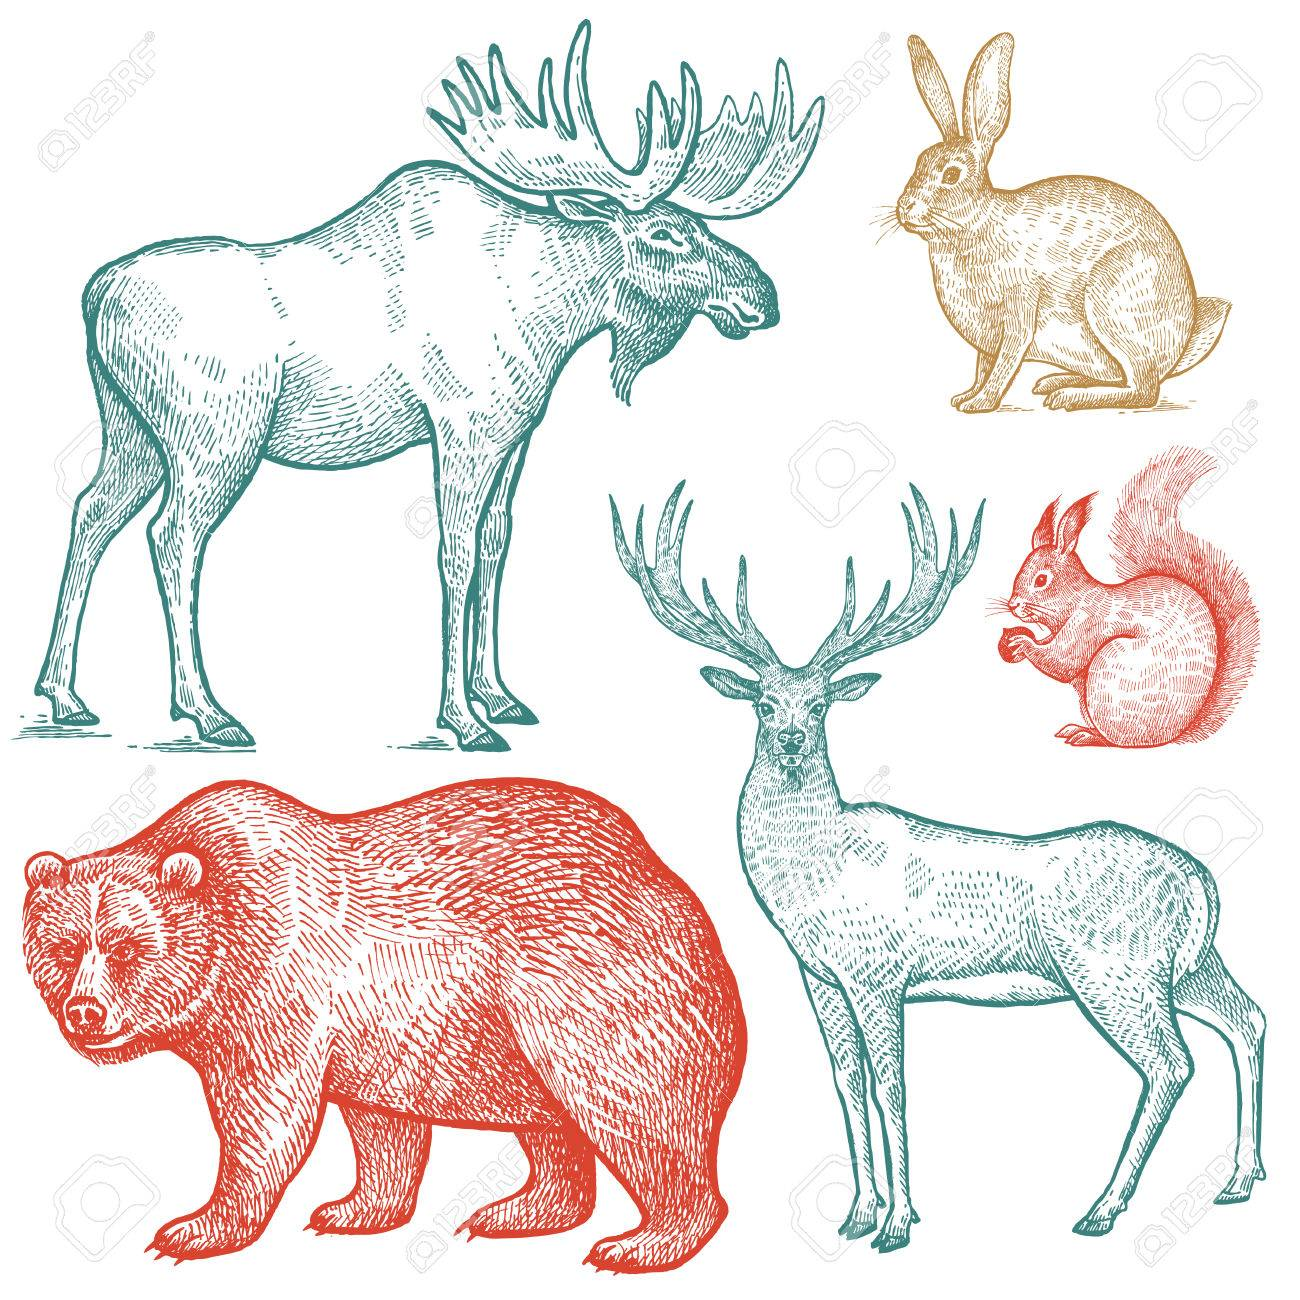 Hello, i soon wish to manually animate (framebyframe) a 3d animation which is to loop. Forest Animals Set Hand Drawing Sketch Color Ink Isolated On White Background Vector Art Illustration Vintage Engraving Style Nature Objects Moose Deer Bear Rabbit Squirrel Wildlife Mammals Royalty Free Cliparts Vectors And